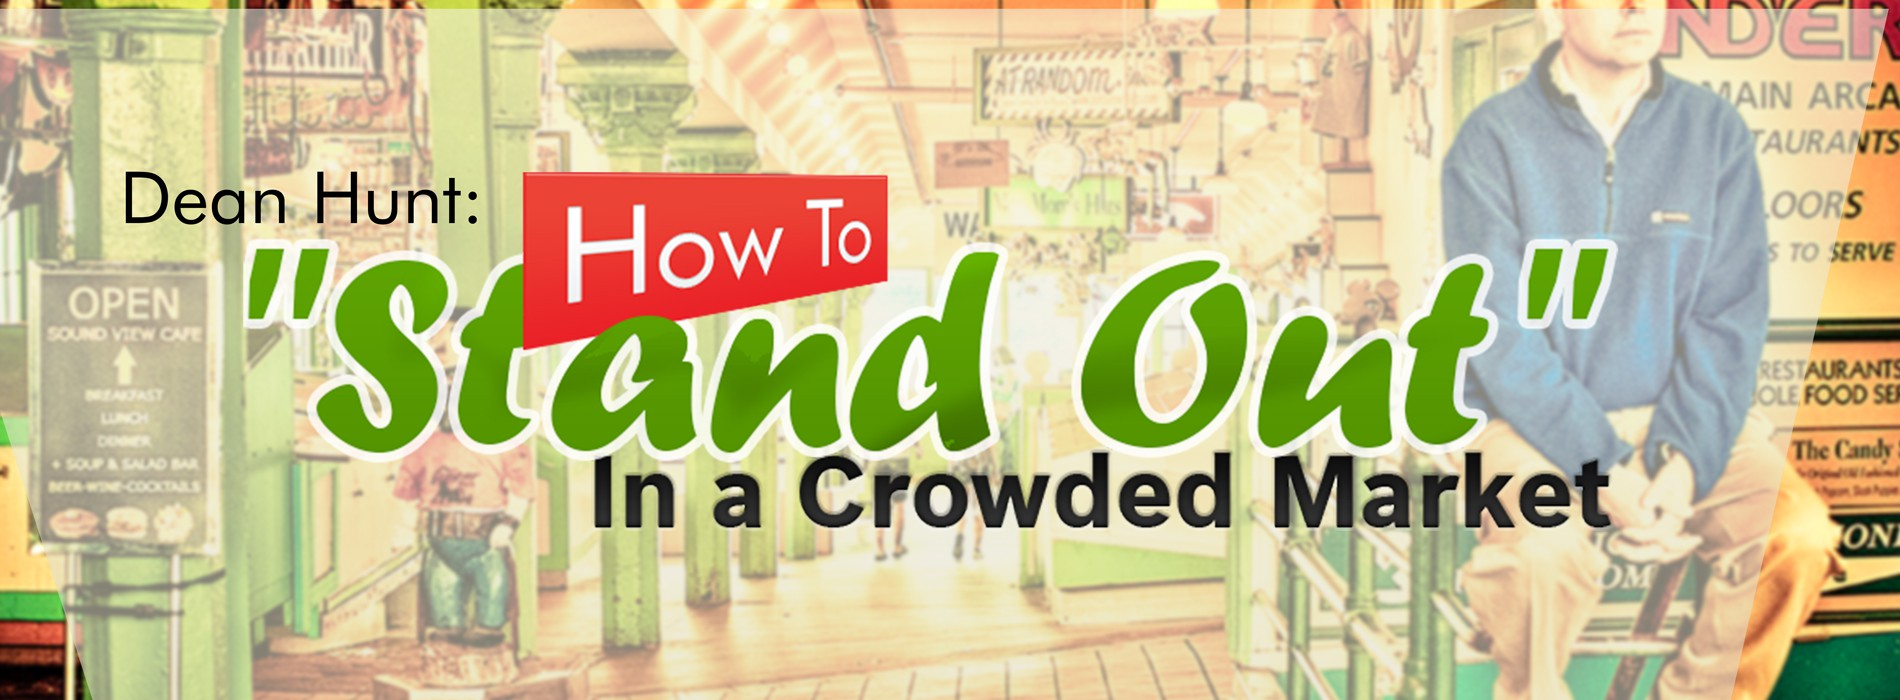 "1900 x 700 Product Banner For Dean Hunt: How To ""Stand Out"" In a Crowded Market"